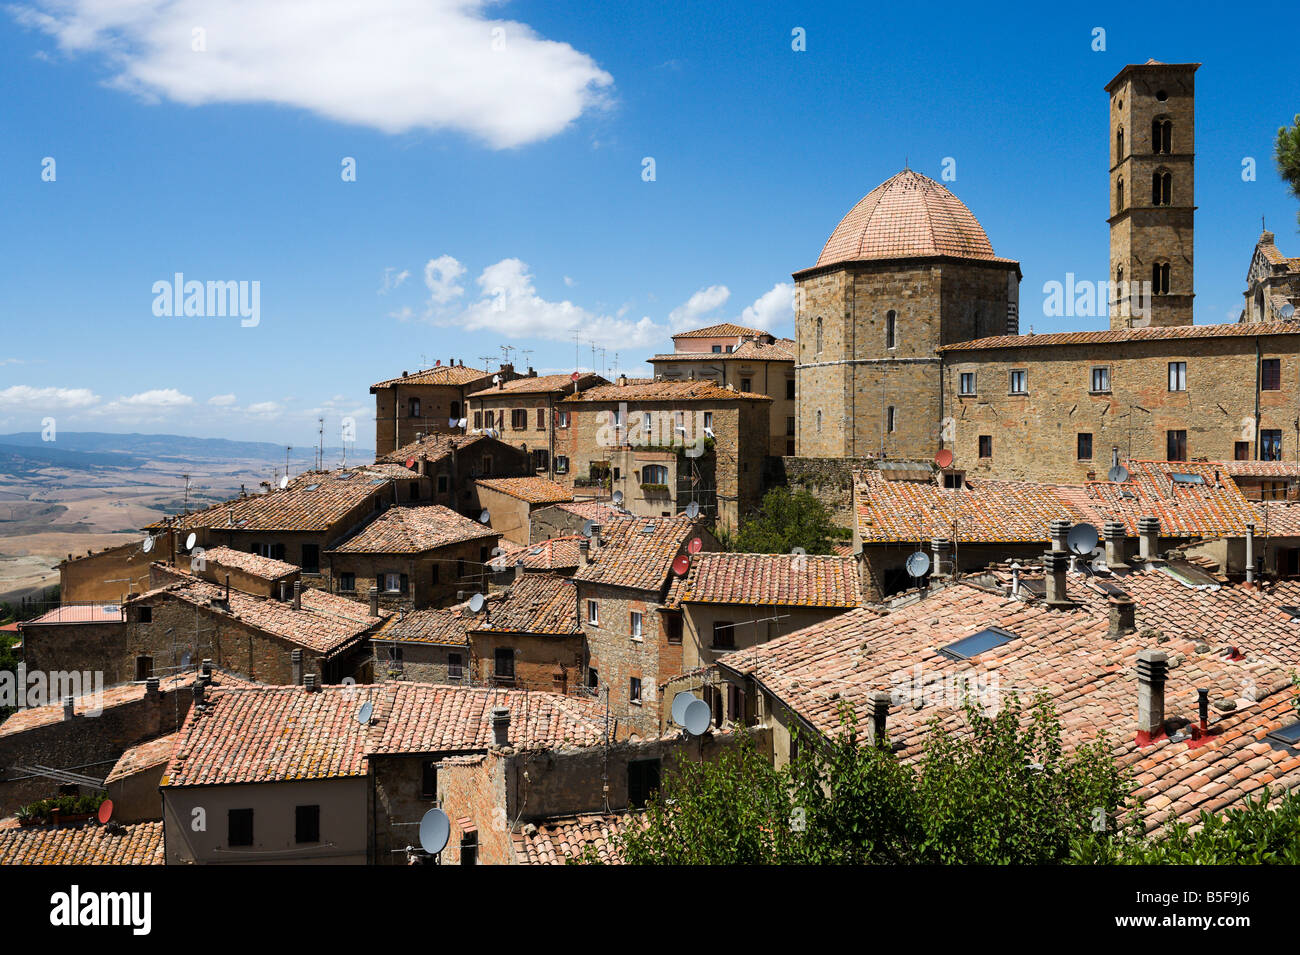 View over the rooftops towards the Duomo and Campanile, Hill Town of Volterra, Tuscany, Italy - Stock Image